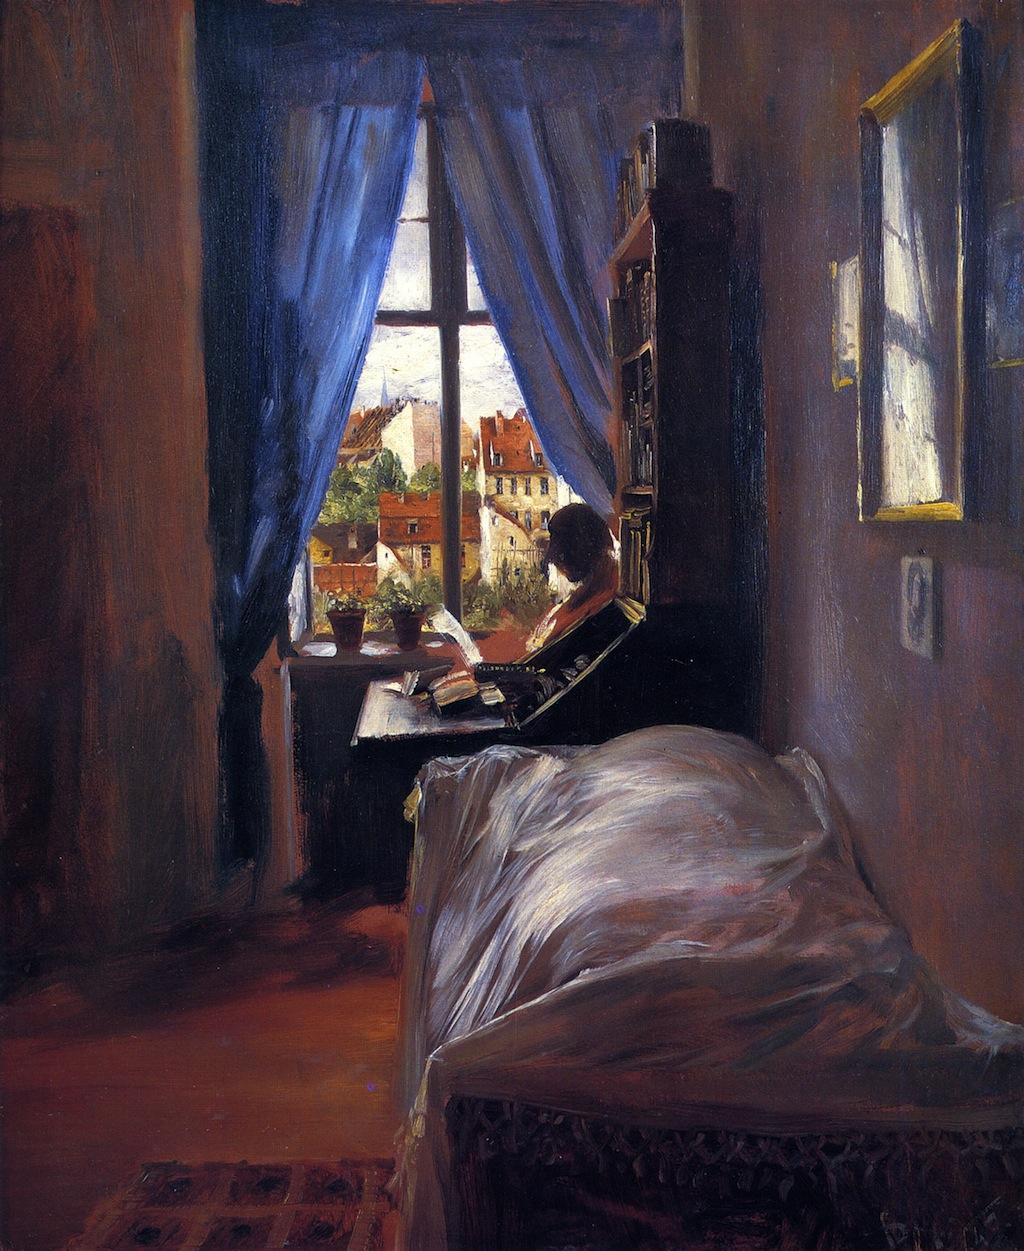 The Artist's Bedroom in Ritterstrasse